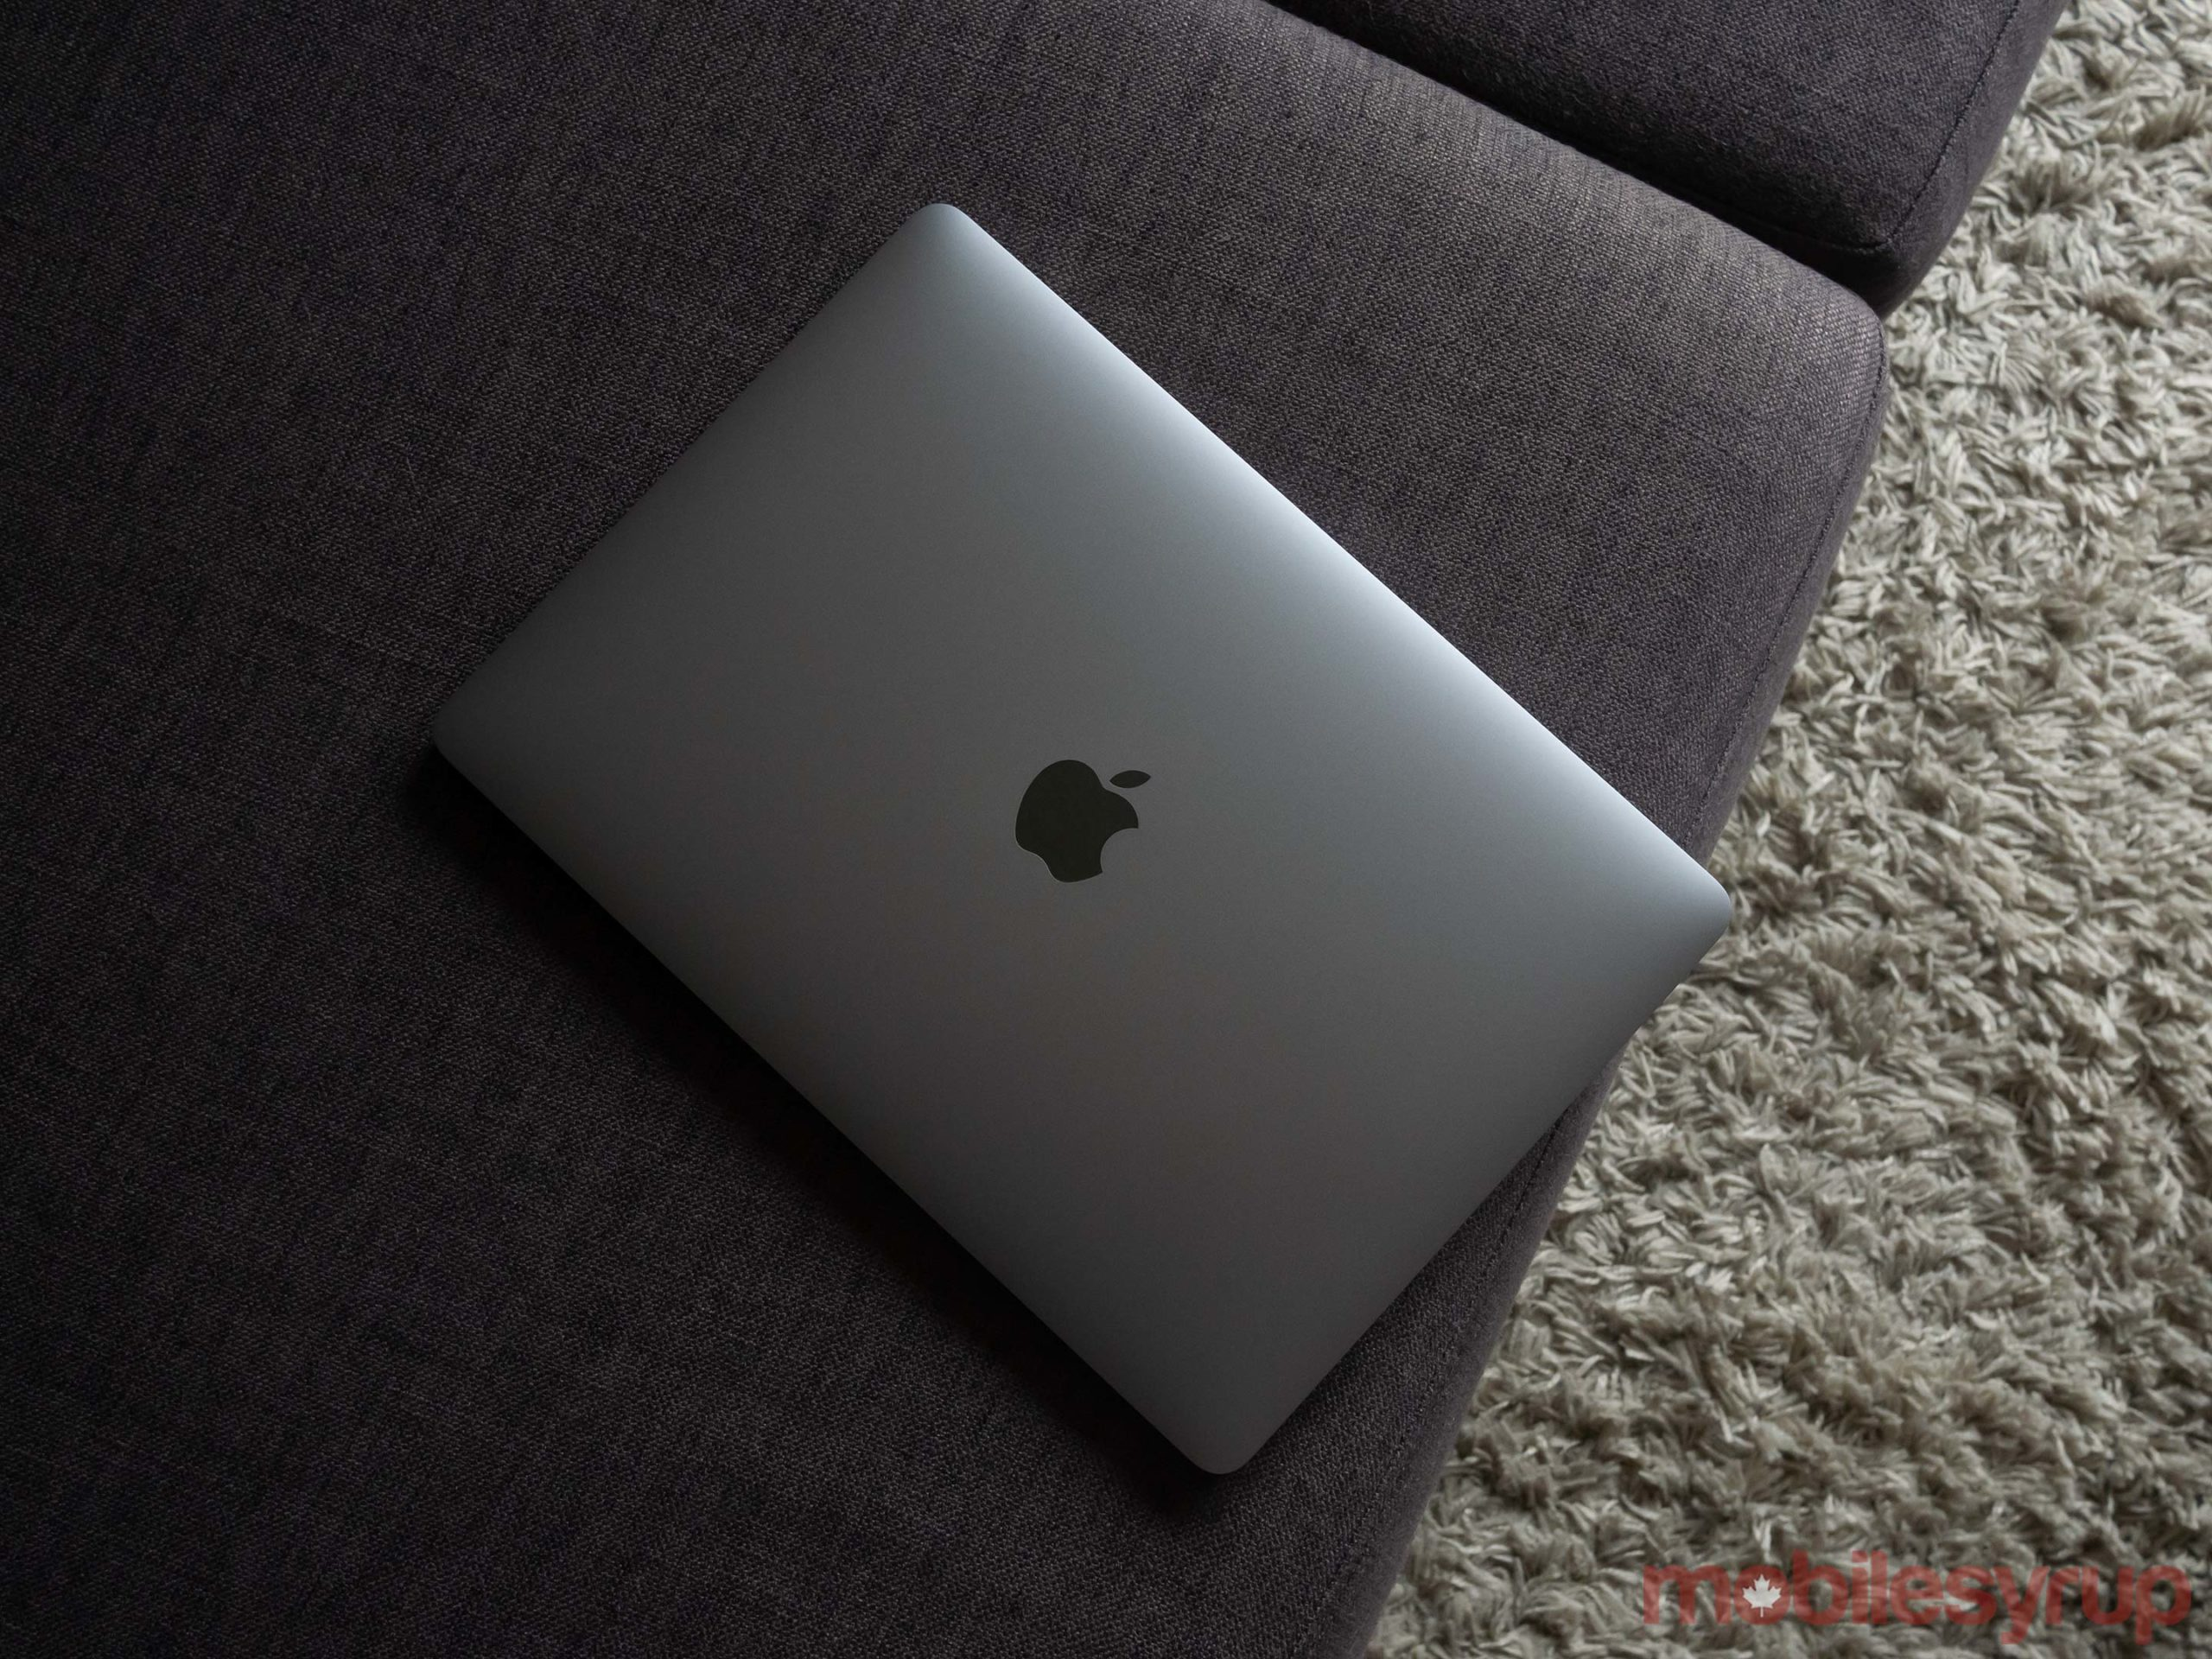 MacBook Air (2020) top down